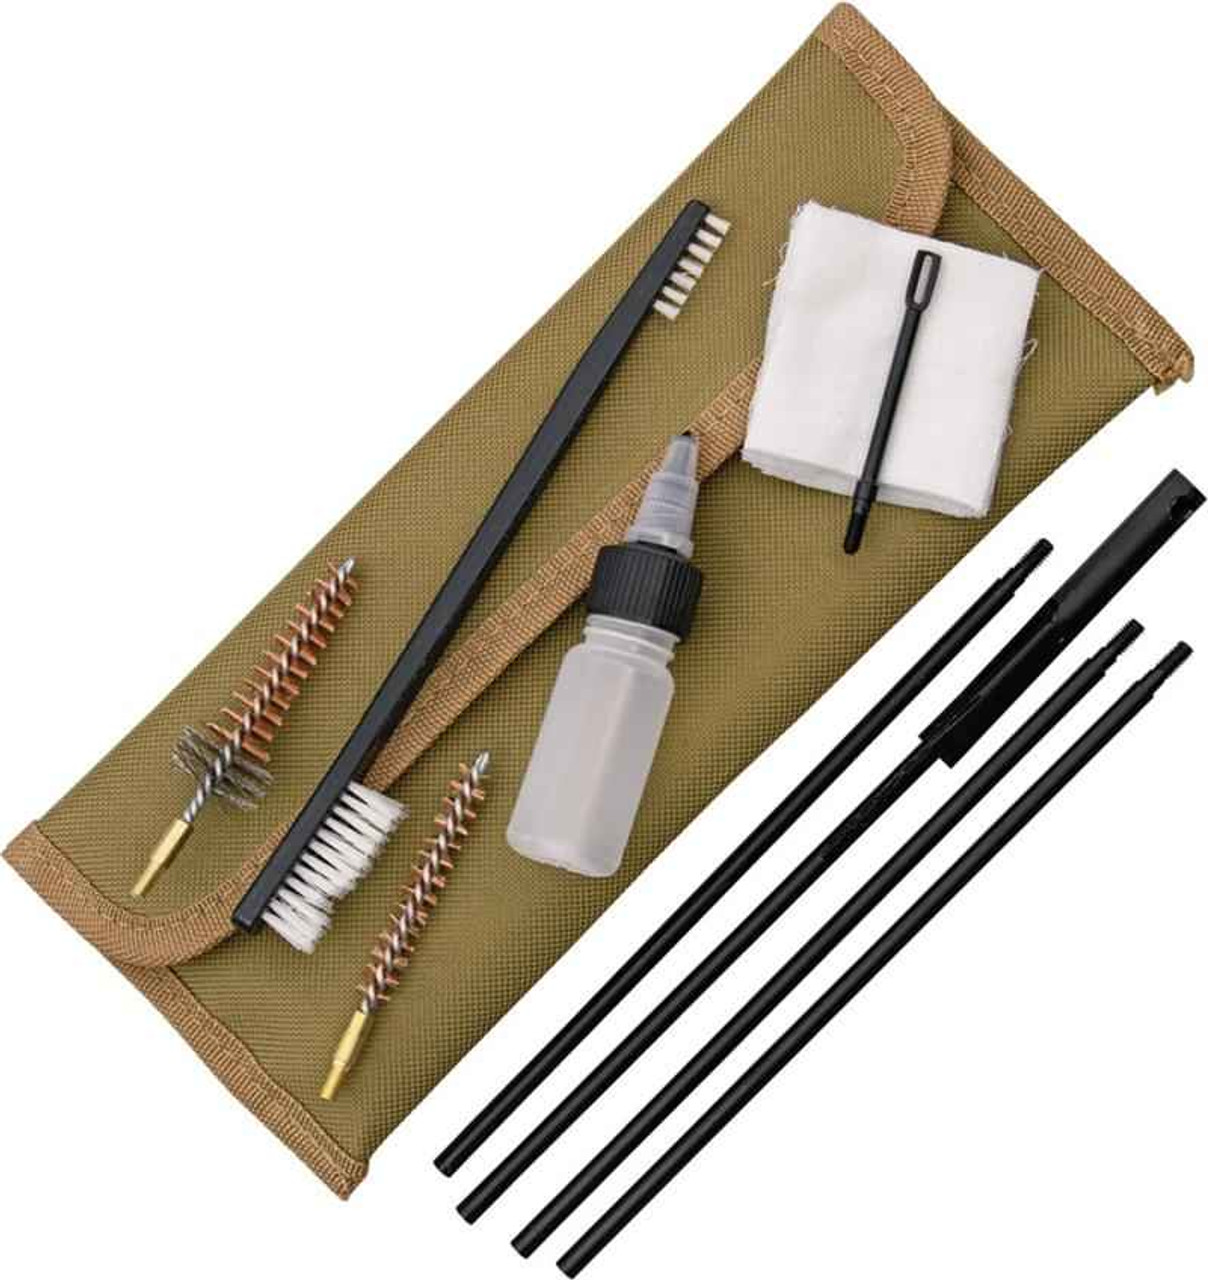 ABKT AB0036T Tac 7.62mm Gun Cleaning Kit, Coyote Tan Pouch.